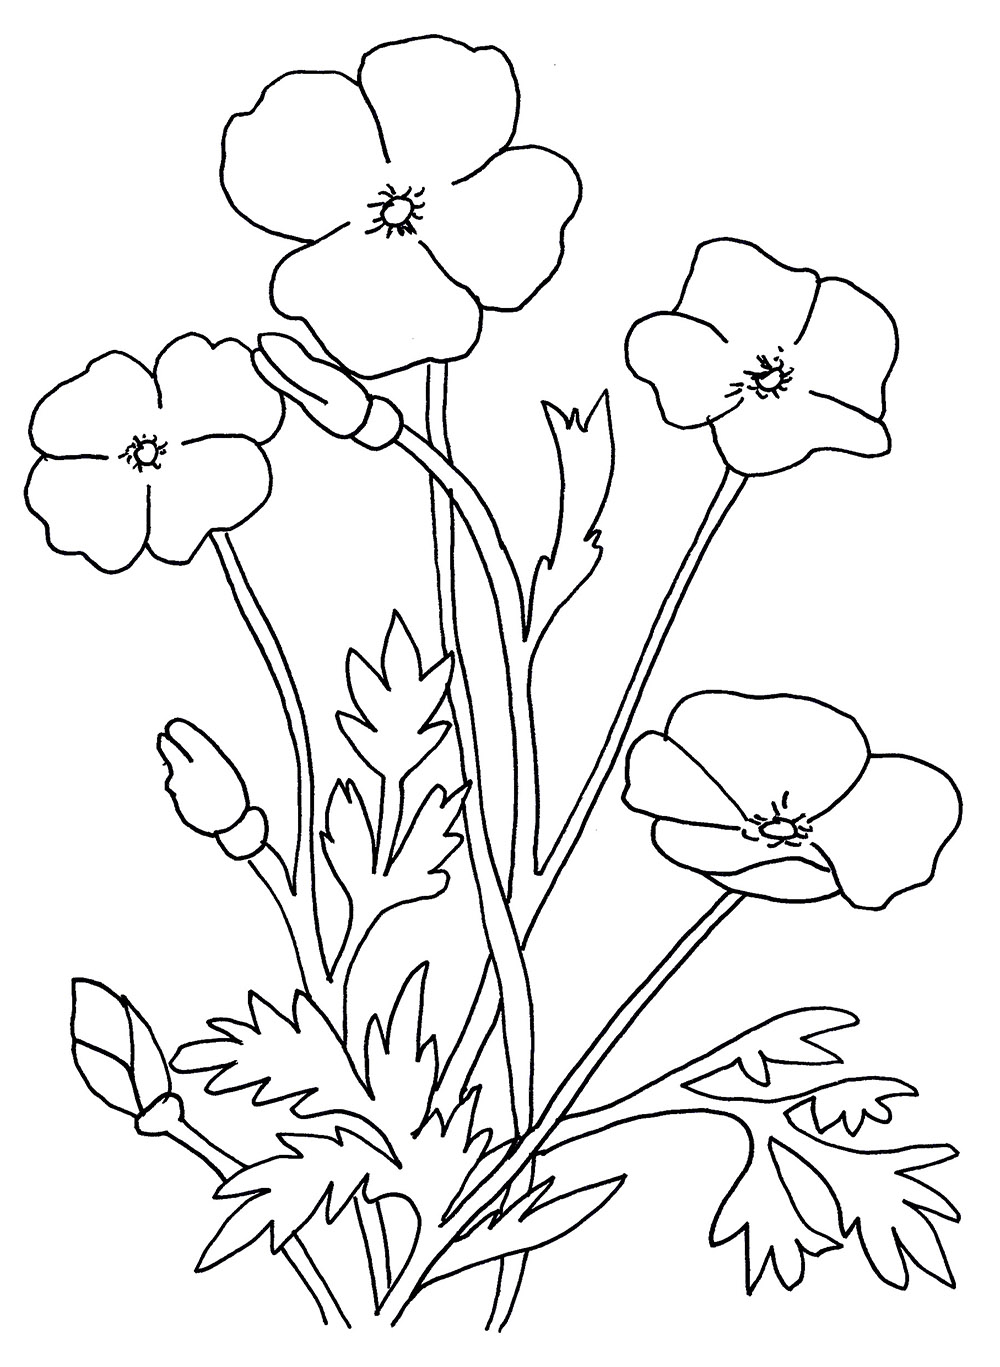 Adult Cute Poppy Coloring Pages Gallery Images cute poppy flowers coloring pages download and print for free gallery images